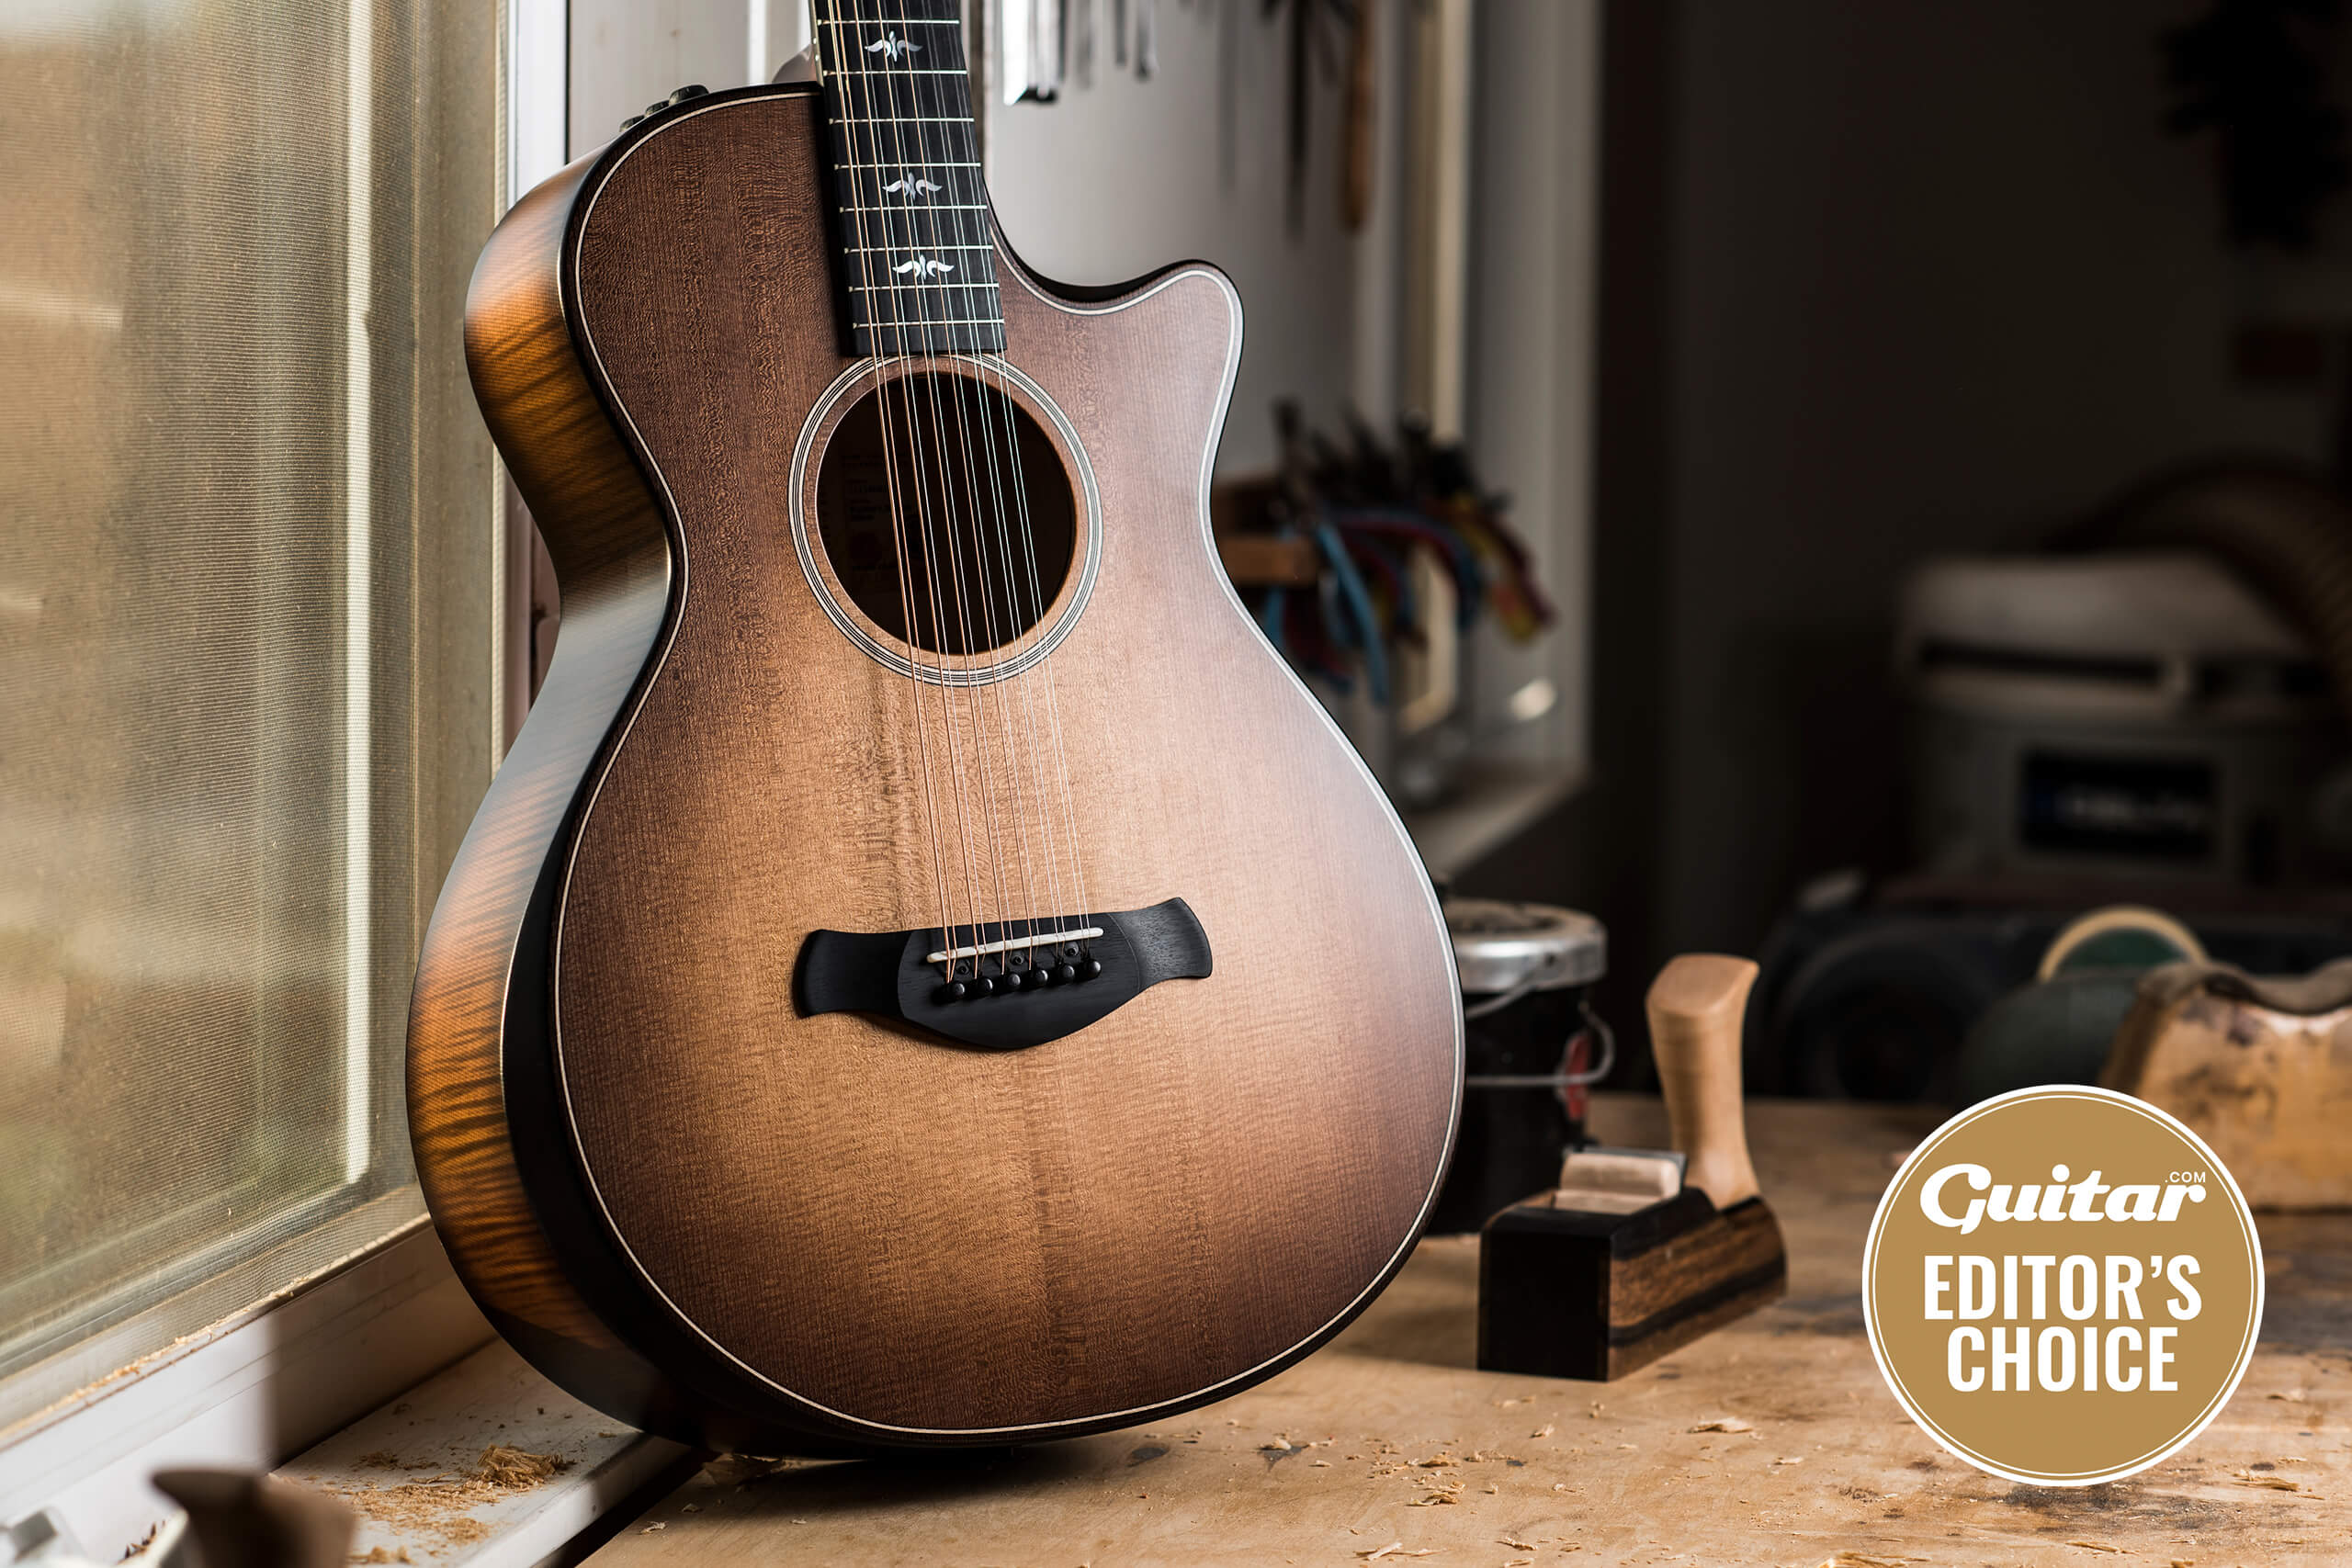 Taylor Builder's Edition 652ce 12 String